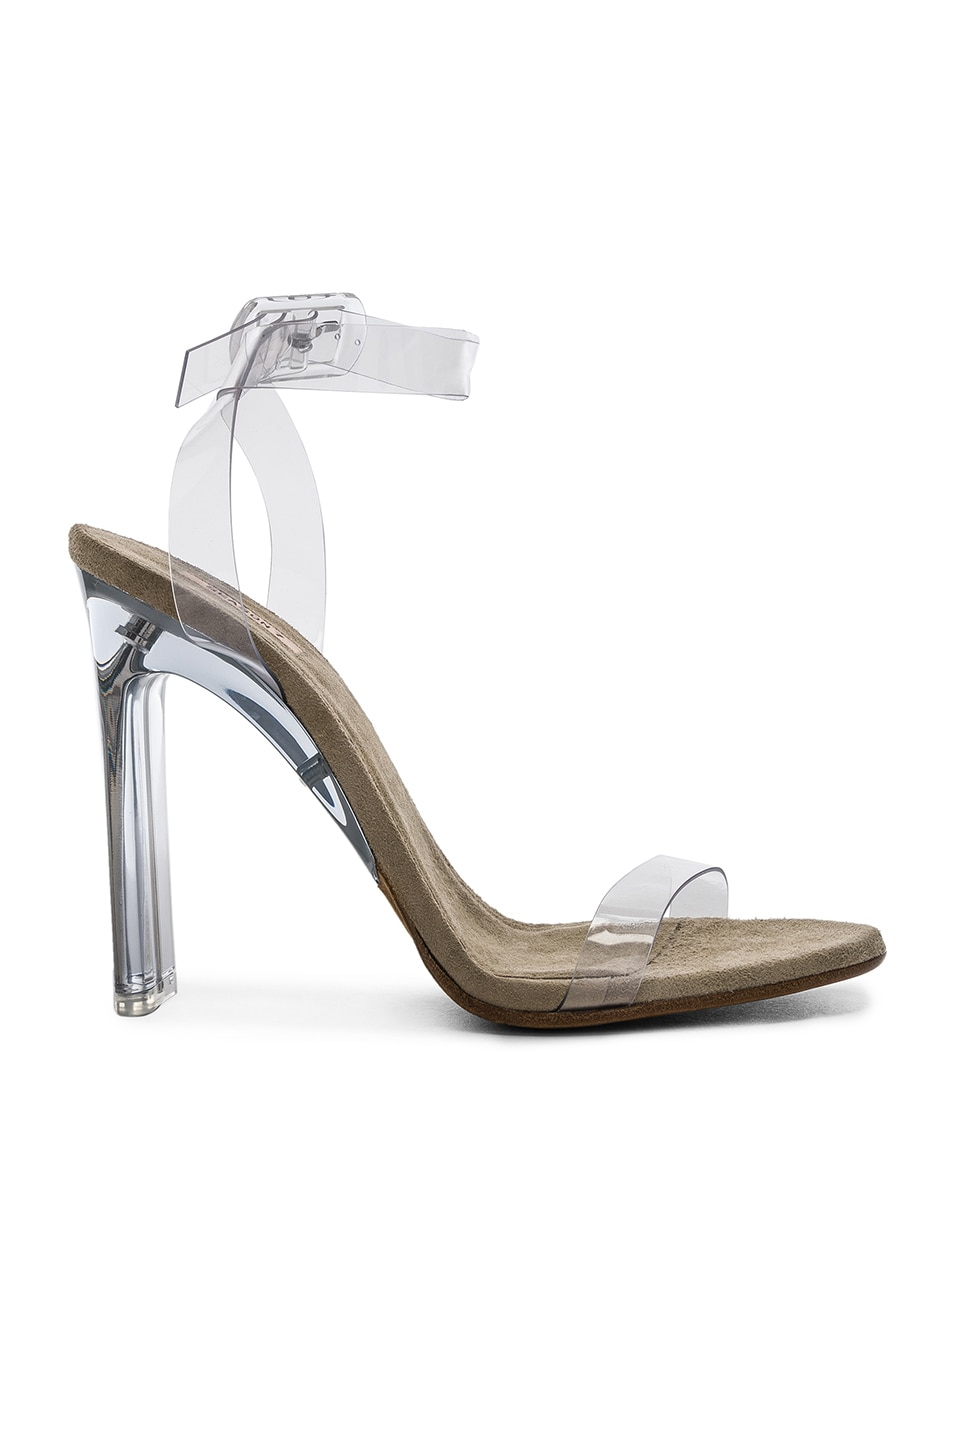 bbc0cea2ae5d Image 1 of YEEZY Season 6 Ankle Strap PVC Heels in Clear